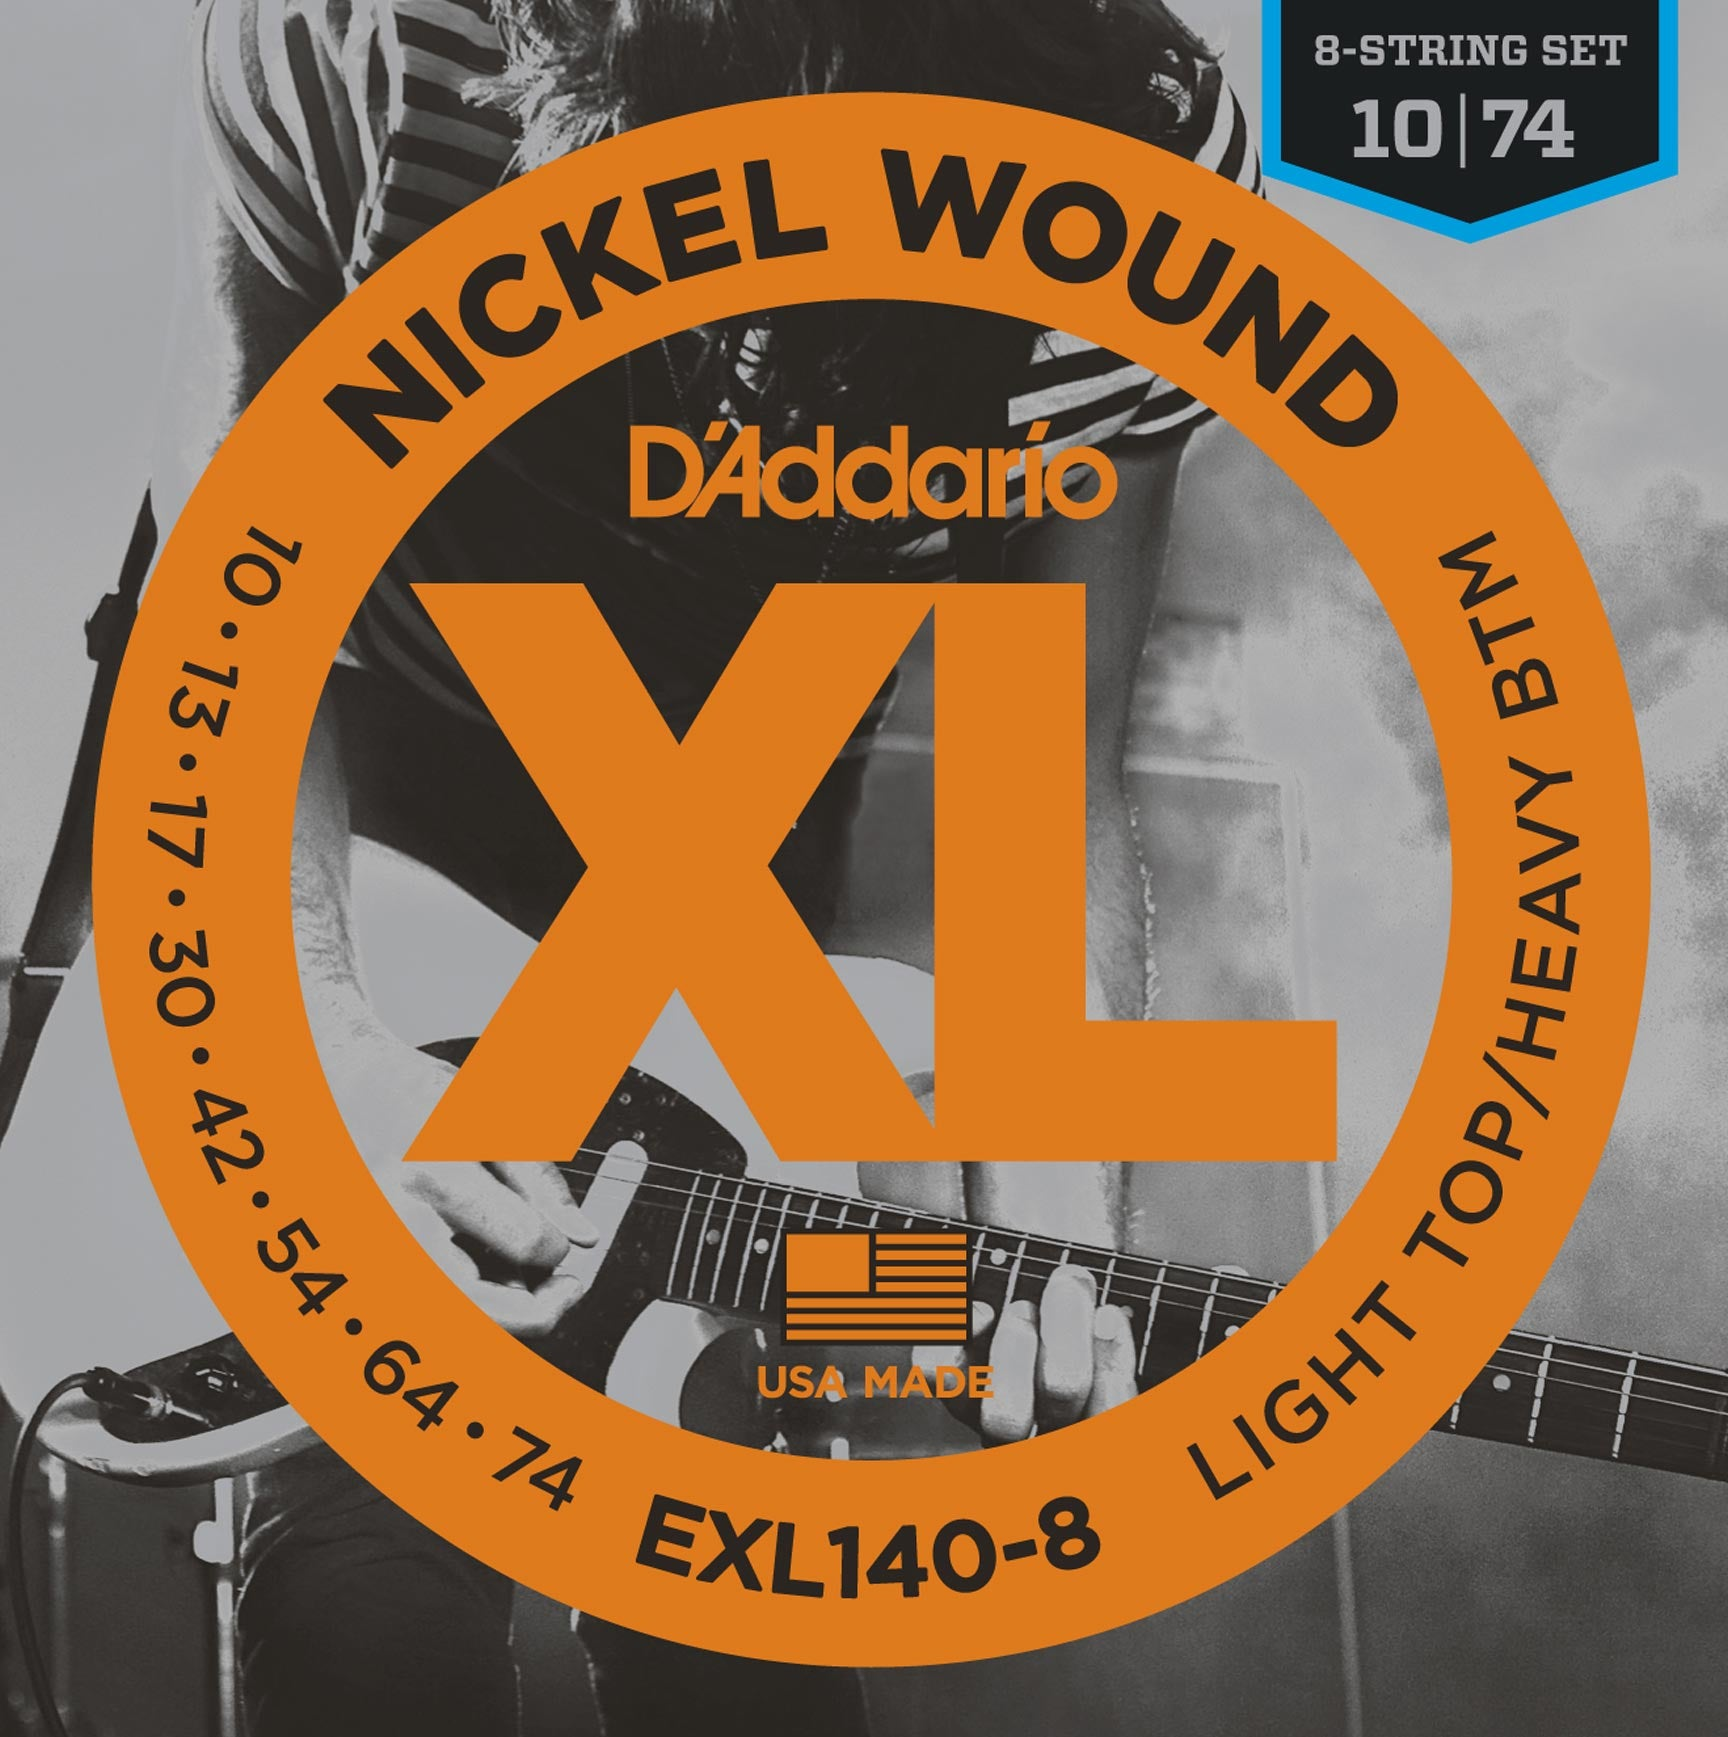 D'ADDARIO EXL140-8 NICKEL WOUND LIGHT TOP/HEAVY BOTTOM 8-STRING GUITAR STRINGS